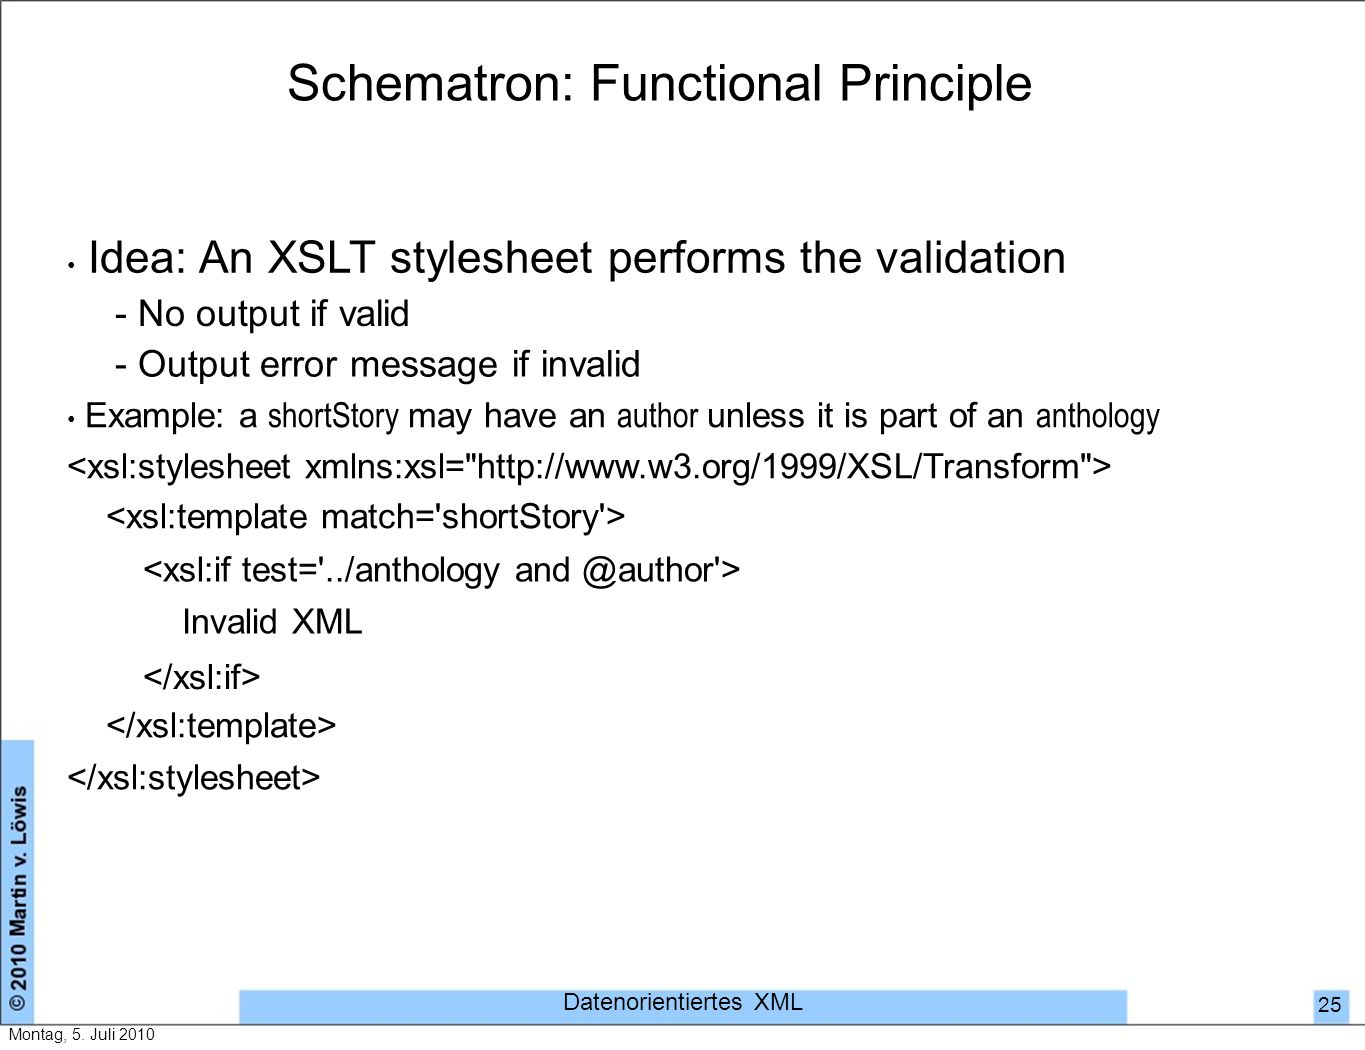 Schematron: Functional Principle Idea: An XSLT stylesheet performs the validation - No output if valid - Output error message if invalid Example: a shortStory may have an author unless it is part of an anthology Invalid XML Datenorientiertes XML 25 Montag, 5.